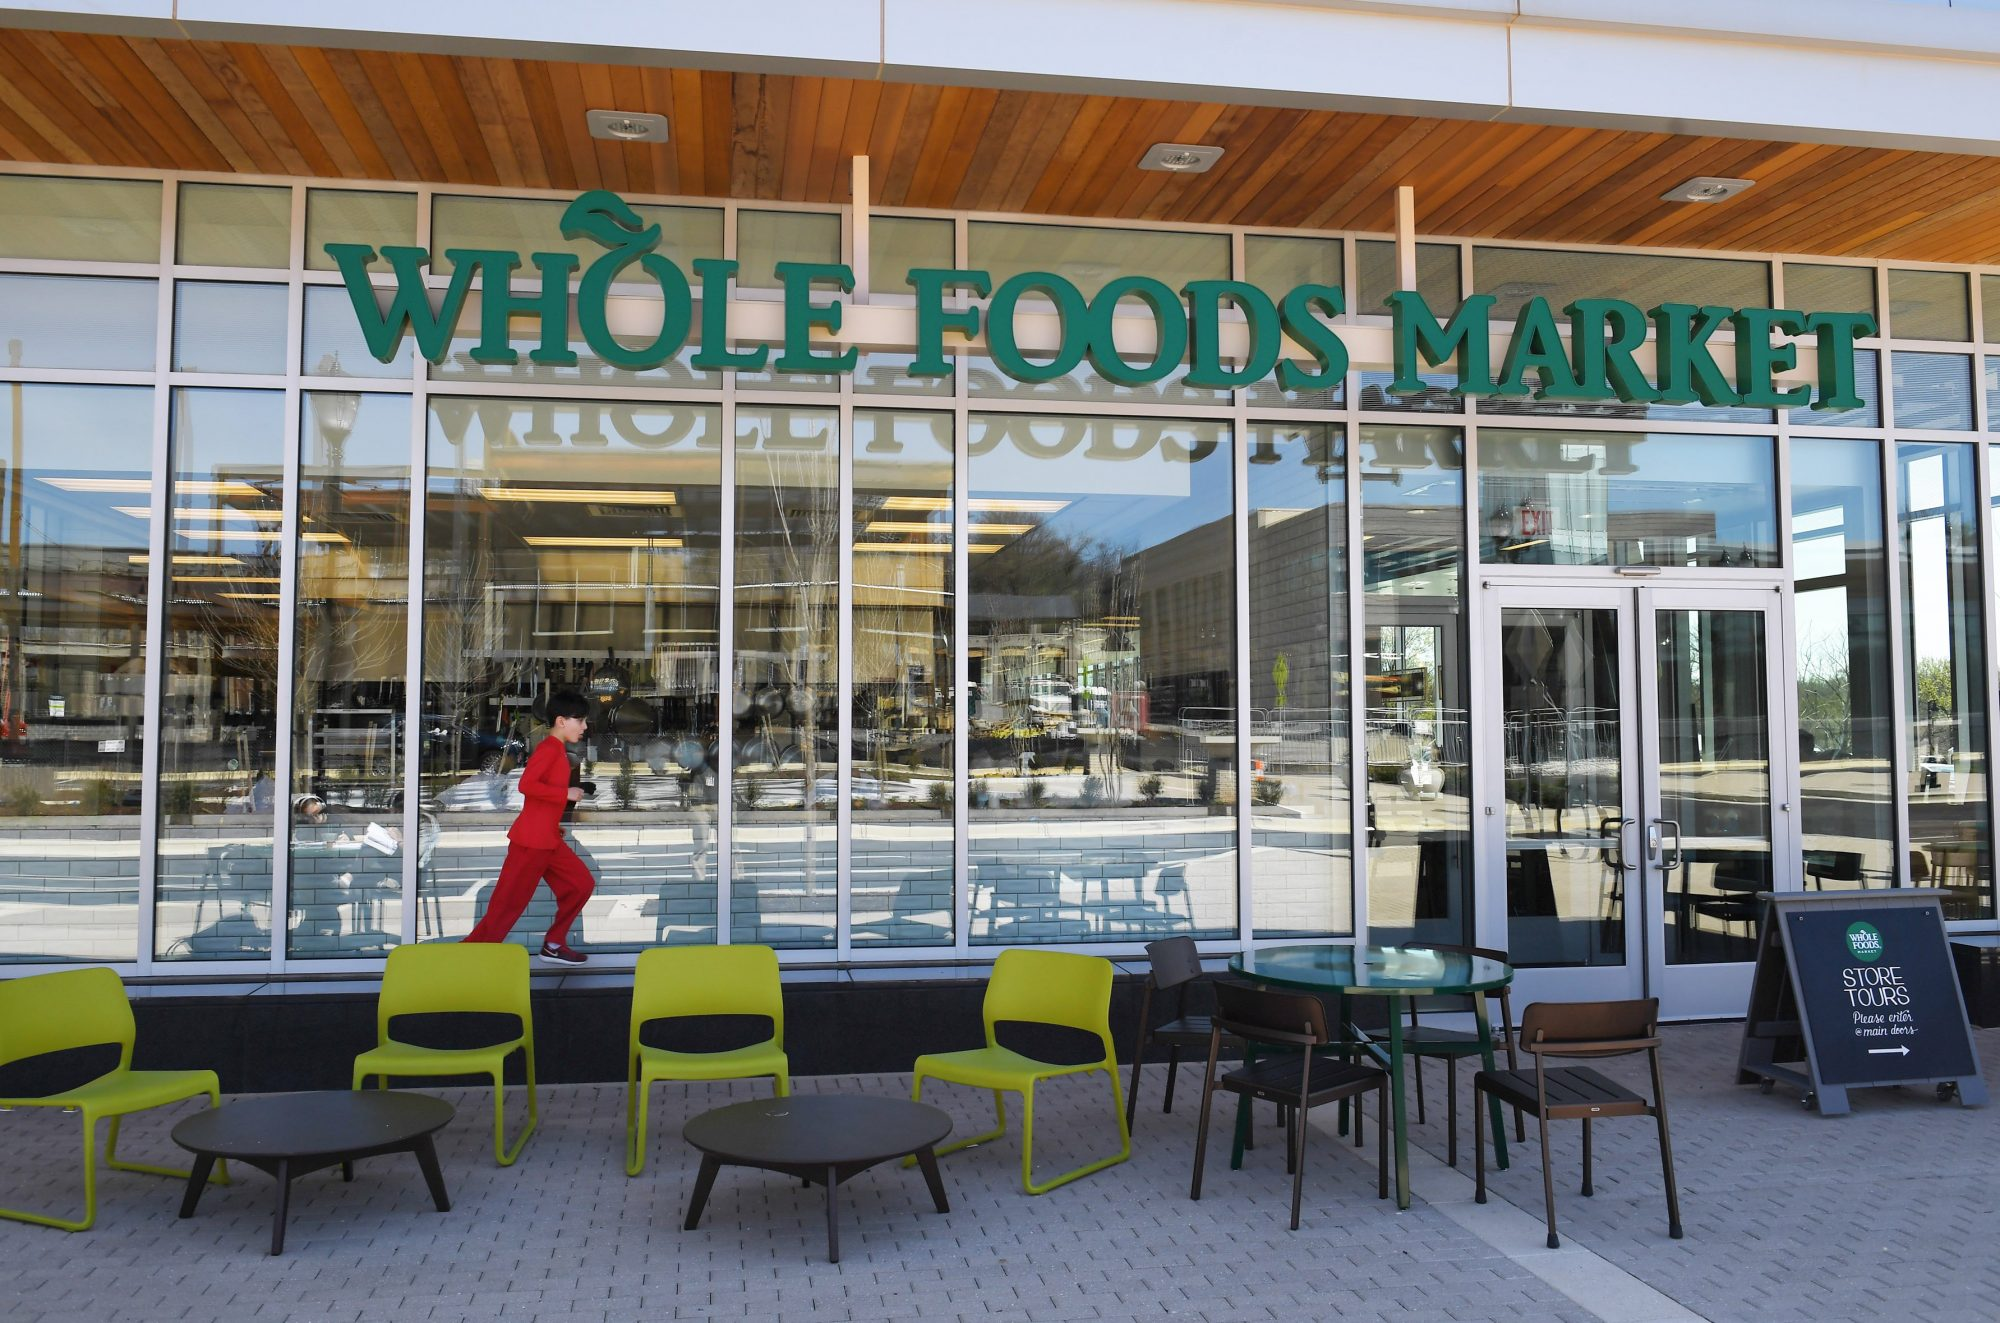 The Most Ridiculously Funny Reactions to Amazon Buying Whole Foods